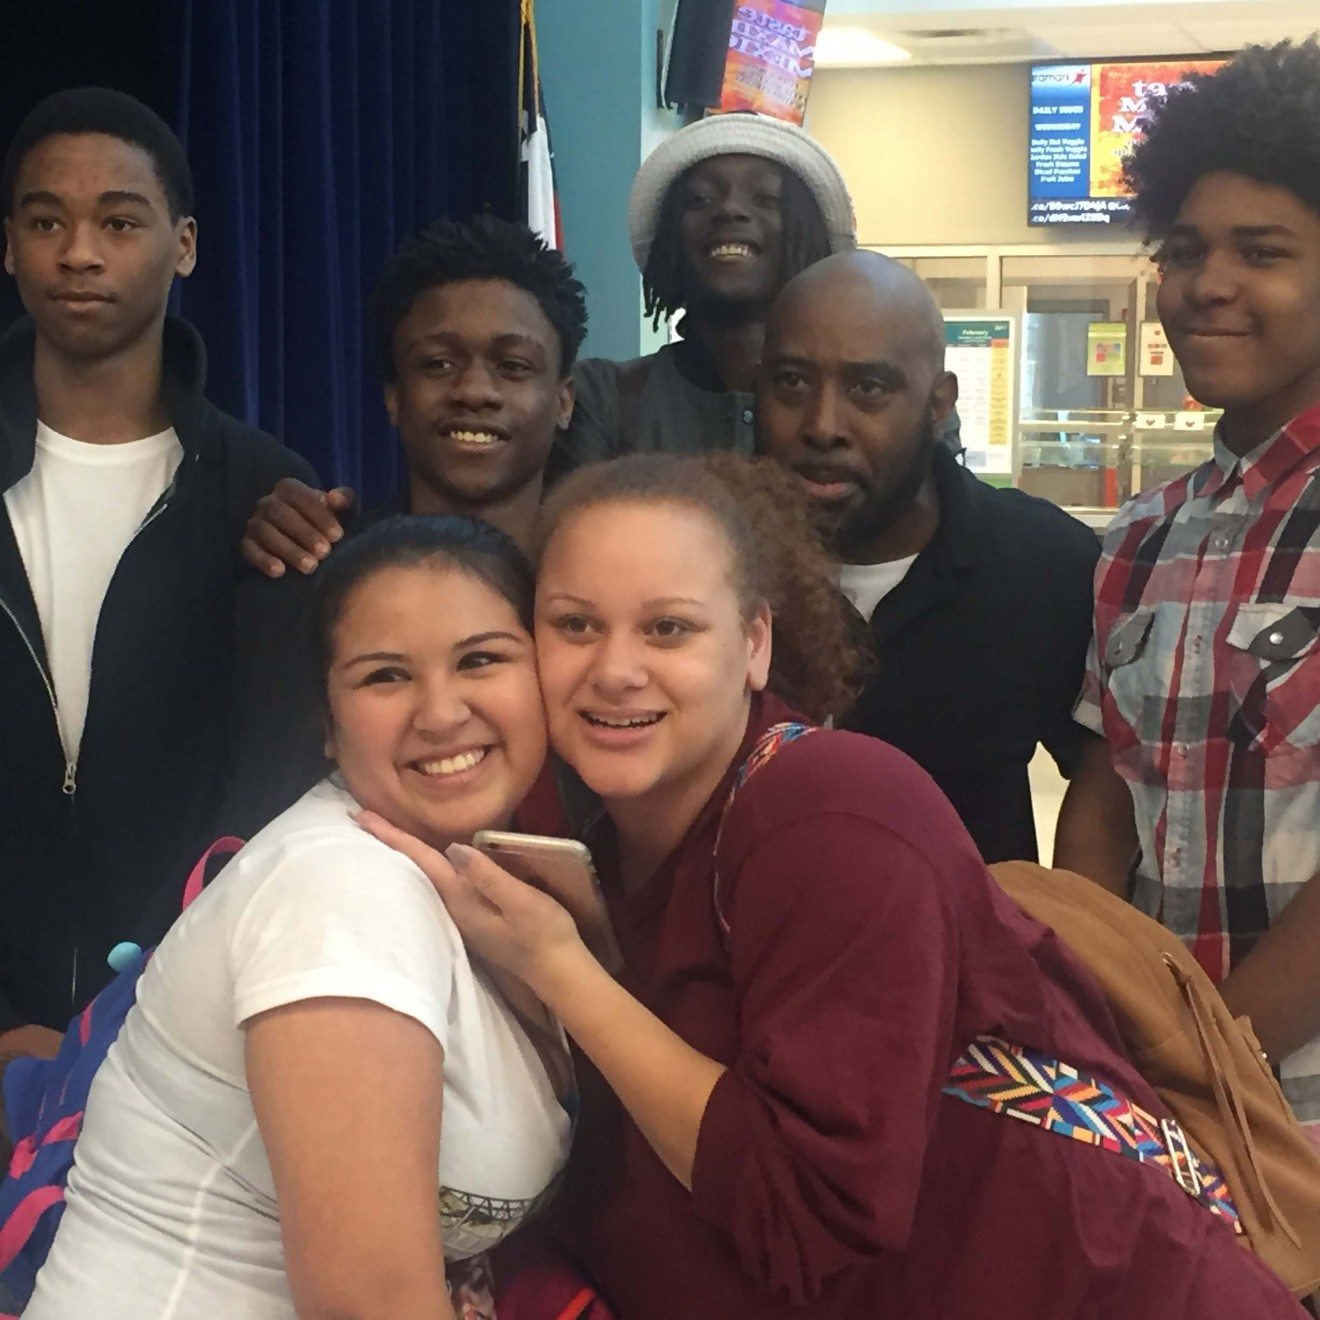 Students learn basketball, goal-setting from Mr. Globetrotter